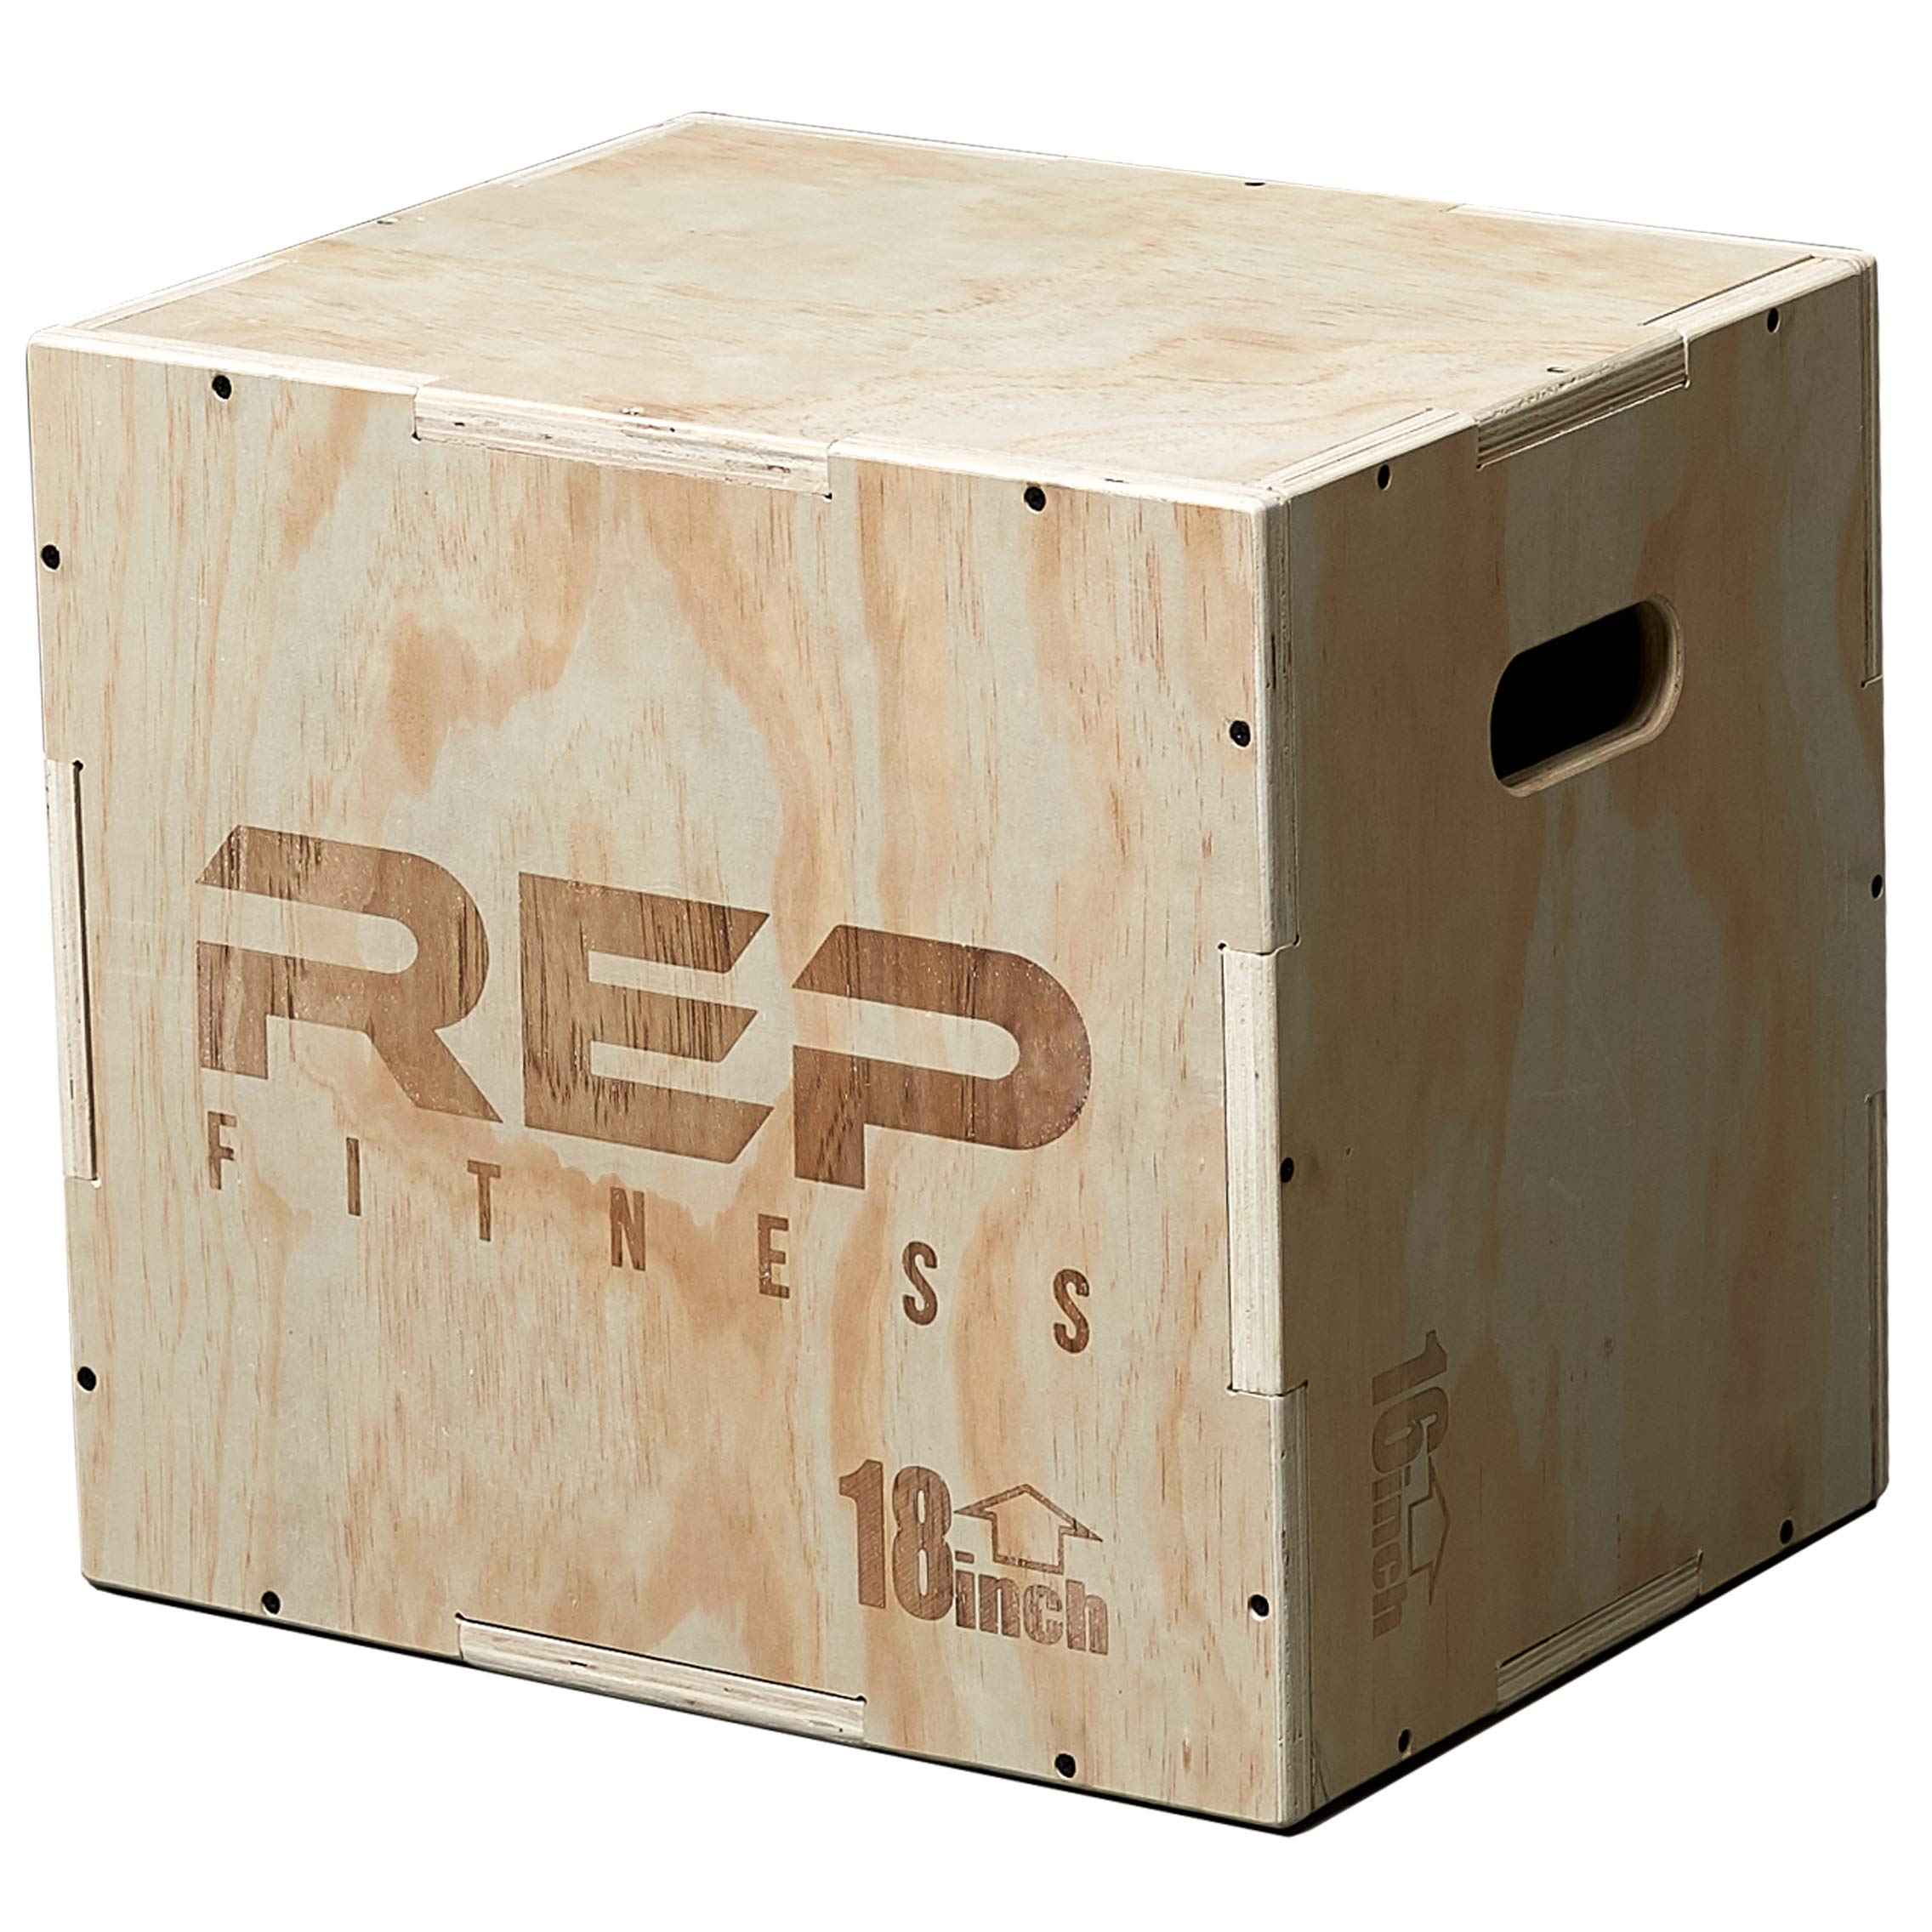 Rep 3 in 1 Wood Plyometric Box for Jump Training and Conditioning 20/18/16 by REP FITNESS